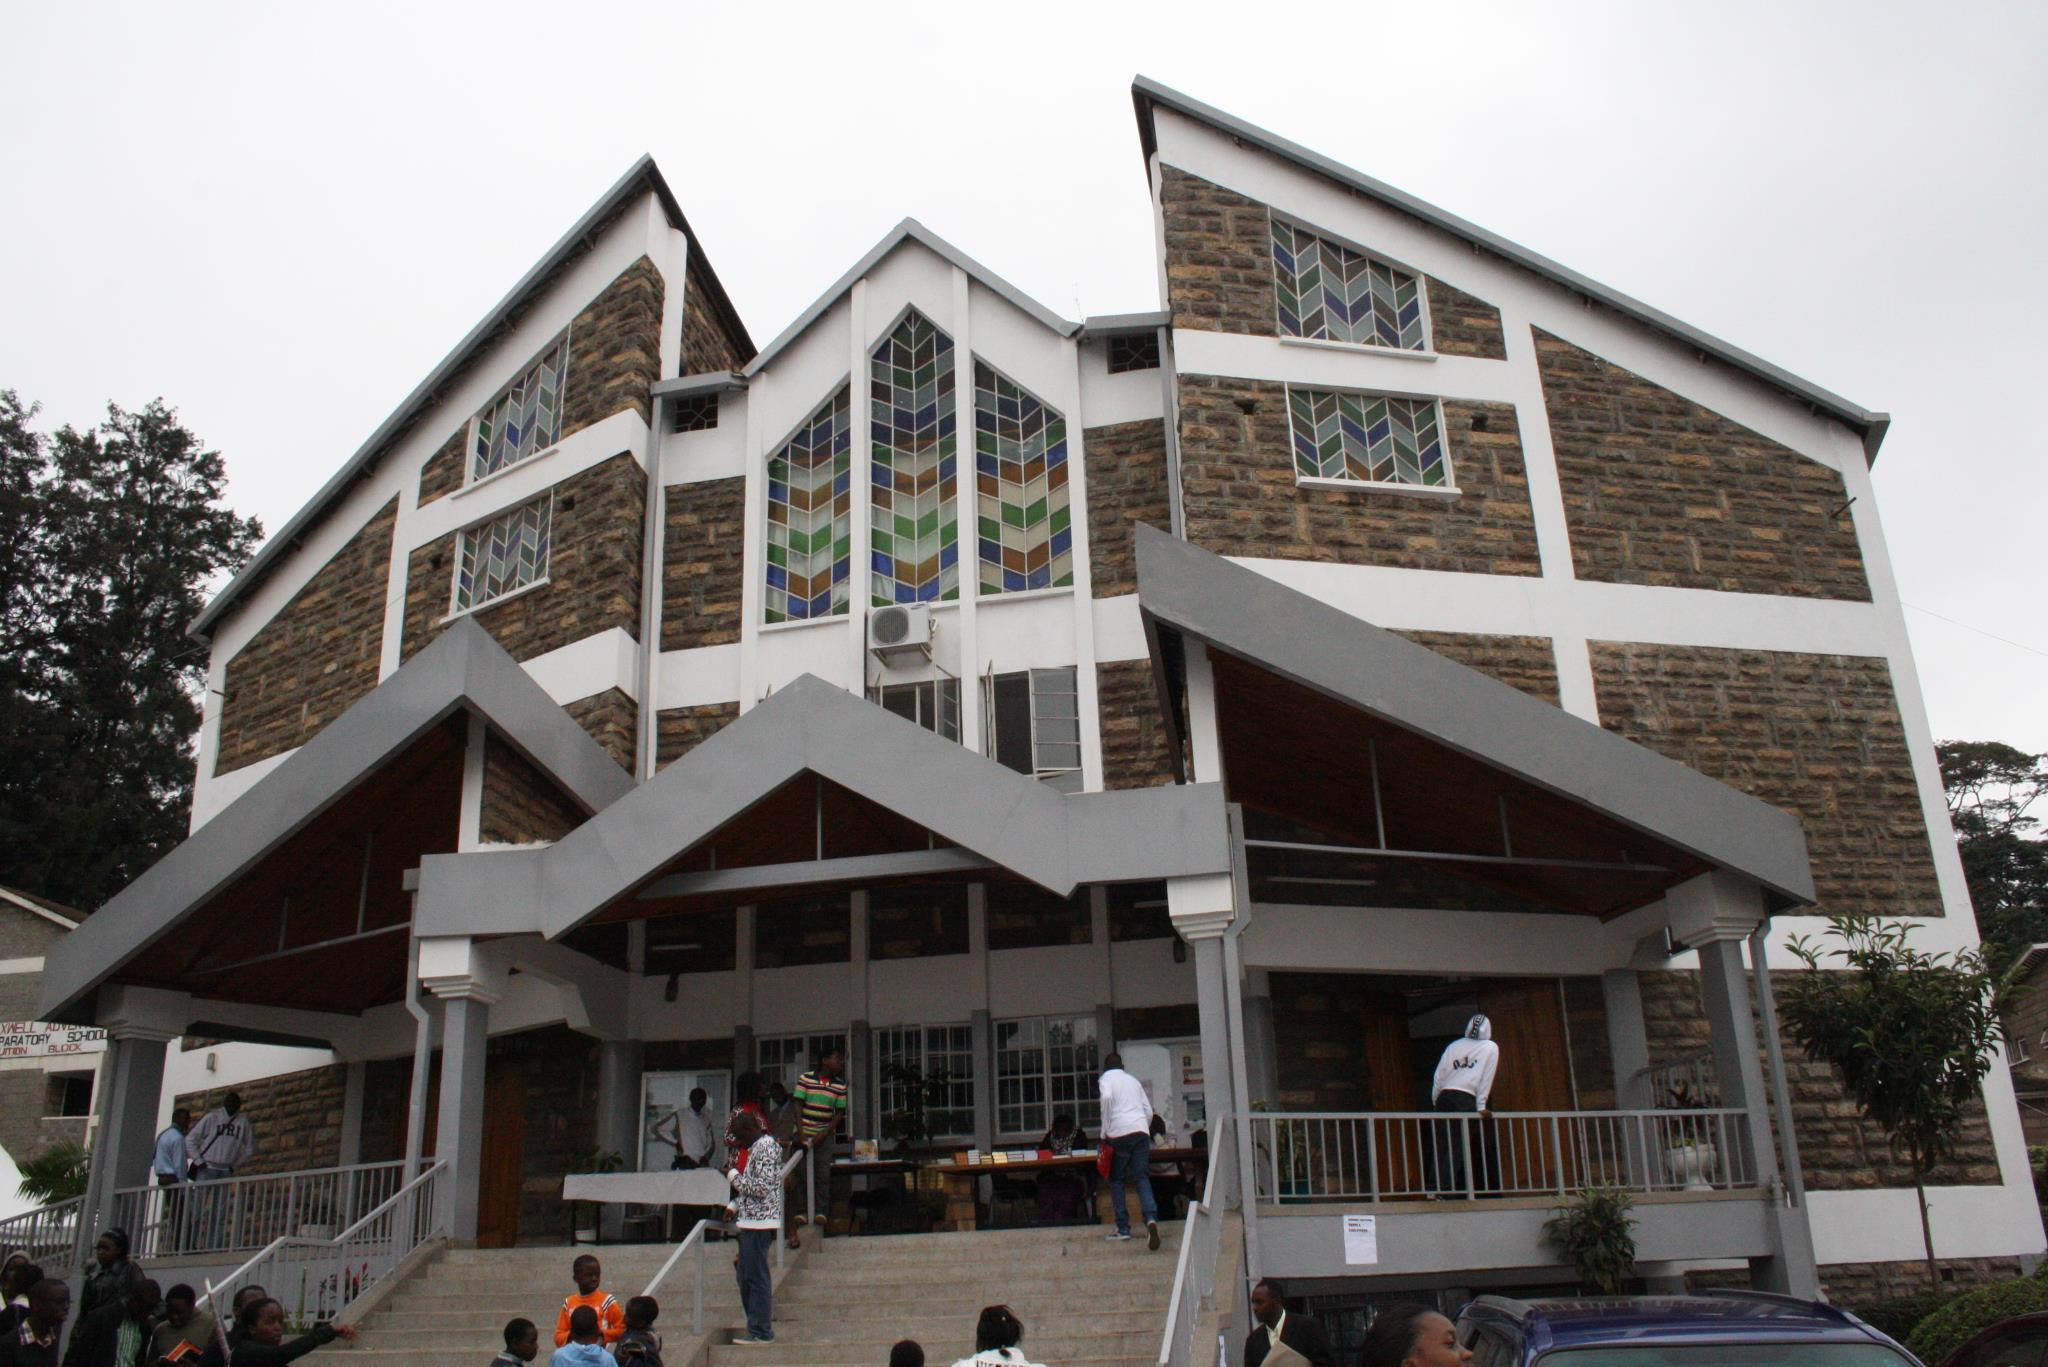 Members at Nairobi Central Seventh-day Adventist Church Seen on